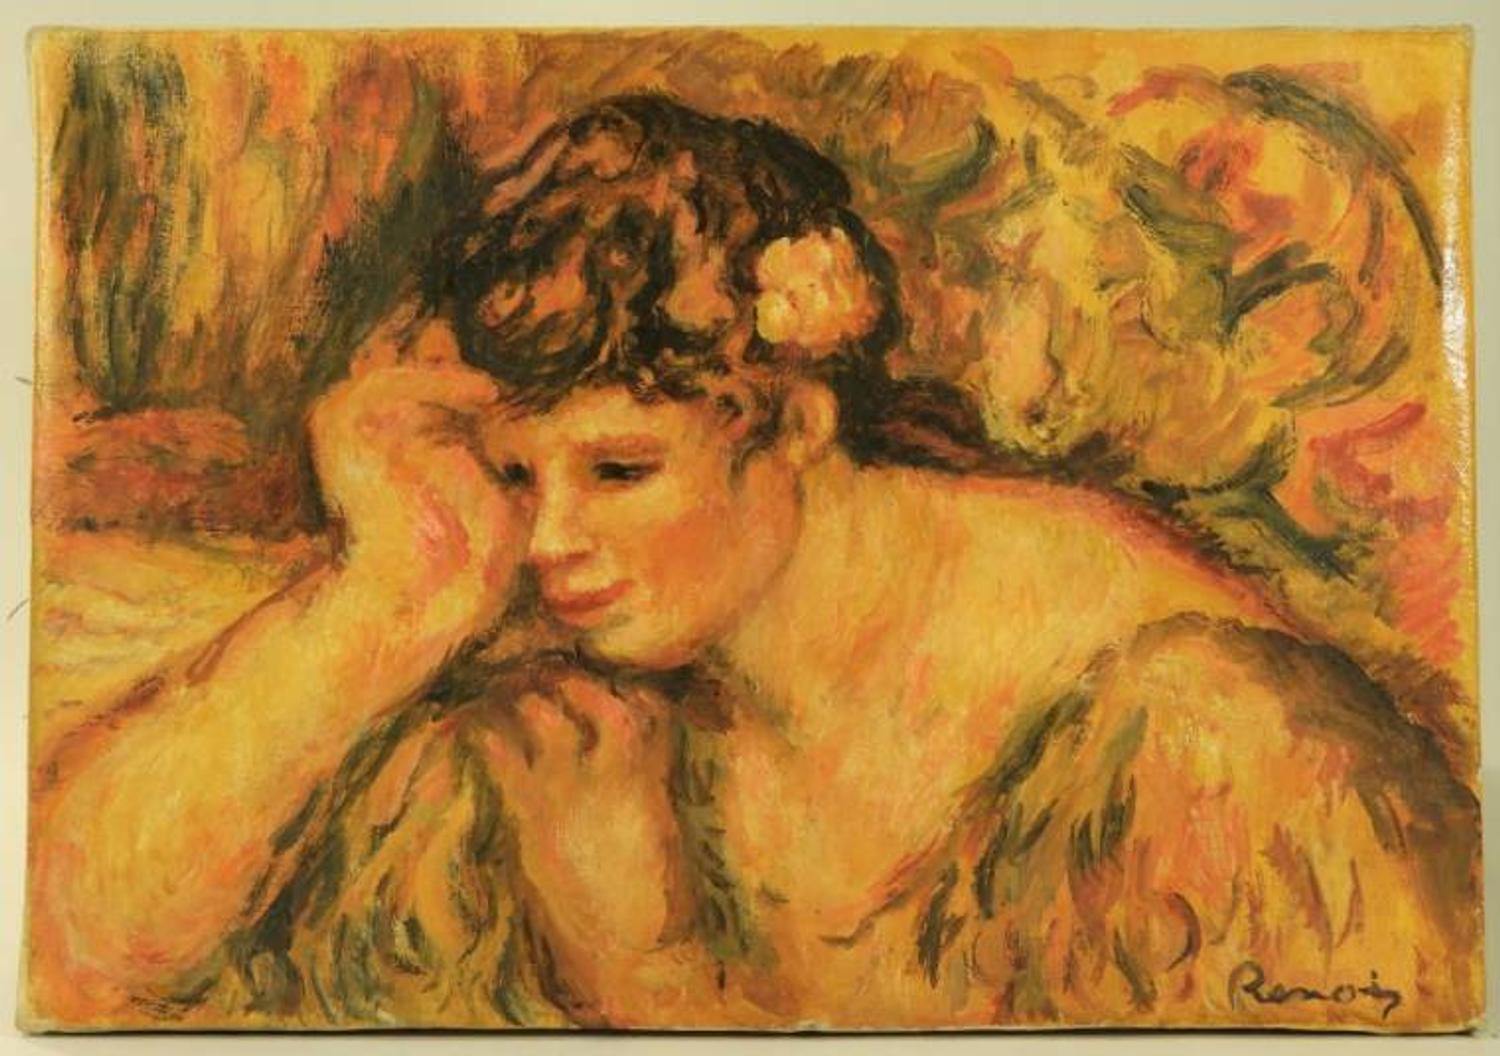 Market Fresh Portrait Painting By Renoir Will Be Auctioned